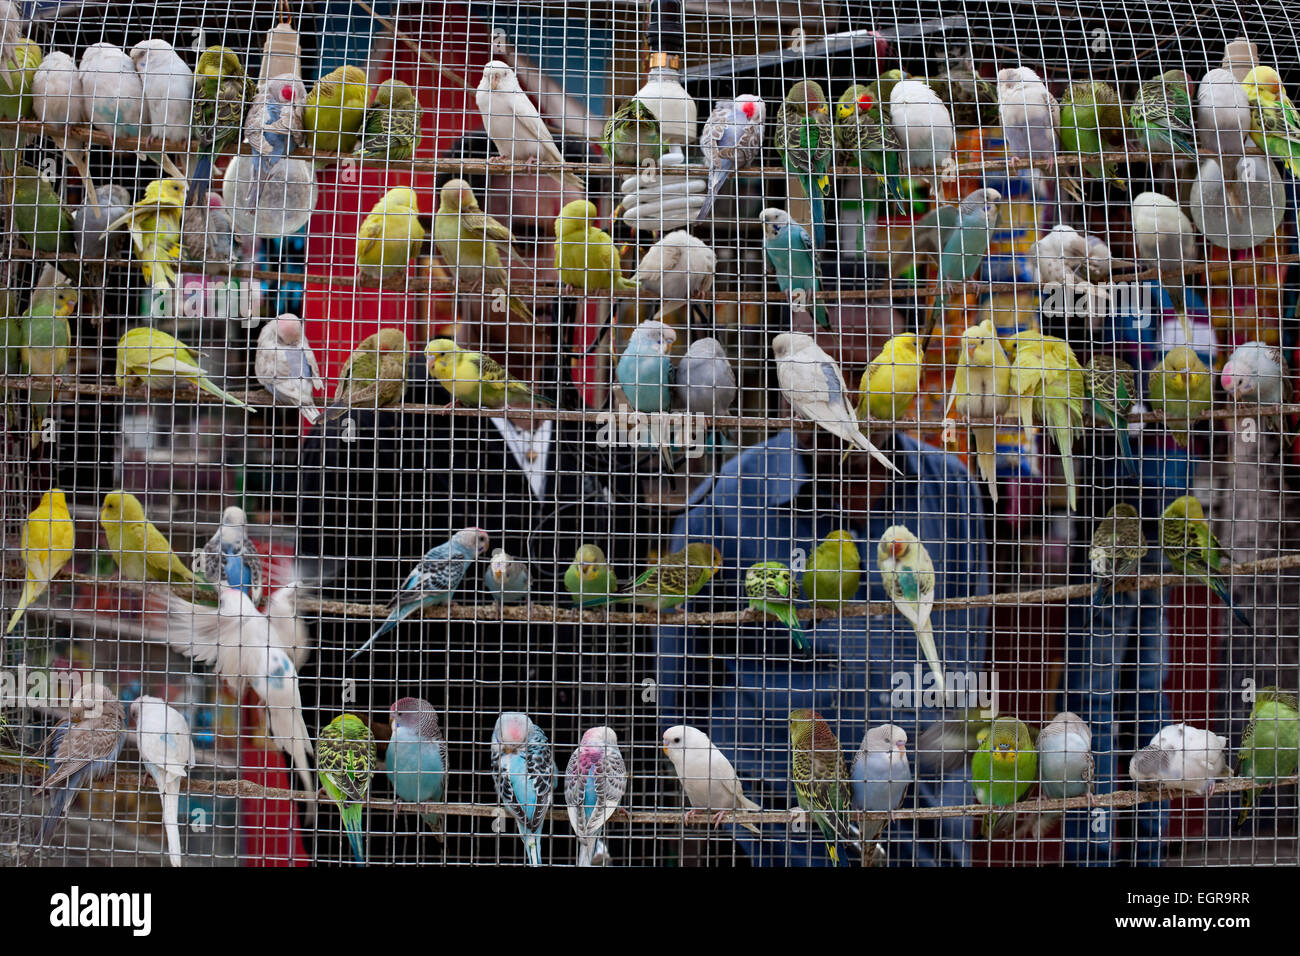 Love Birds Cage High Resolution Stock Photography And Images Alamy